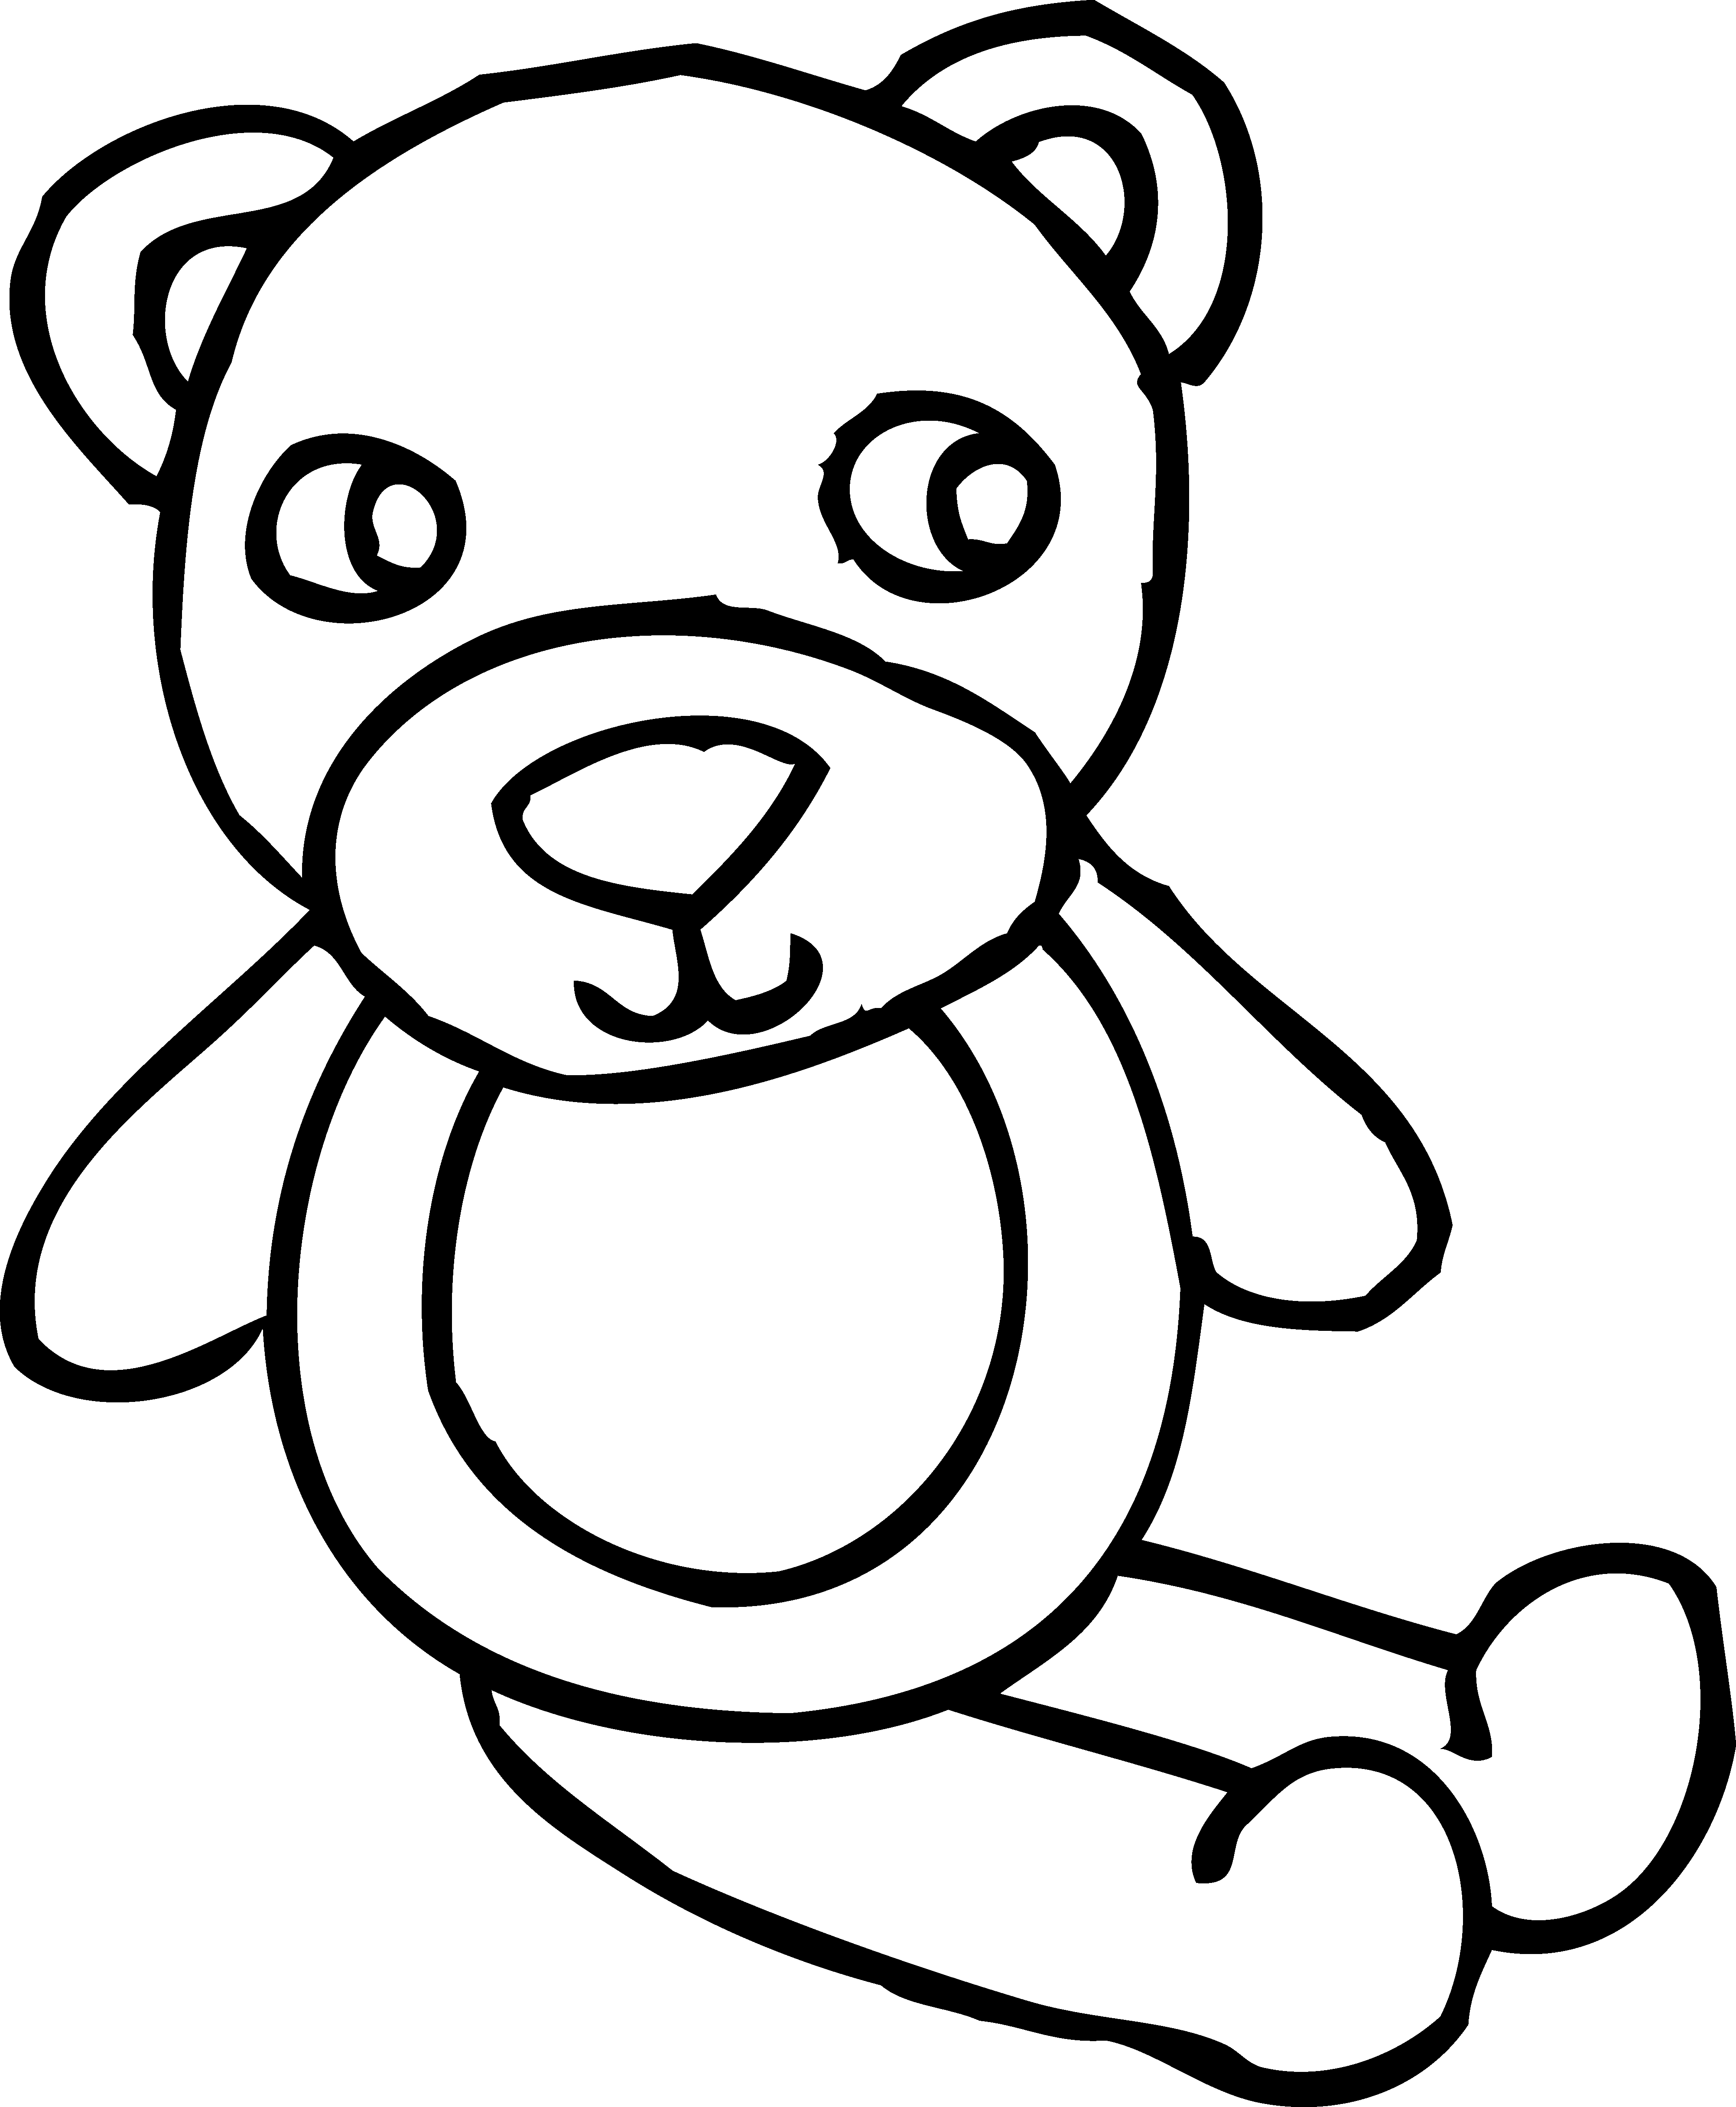 Teddy clipart coloring #8